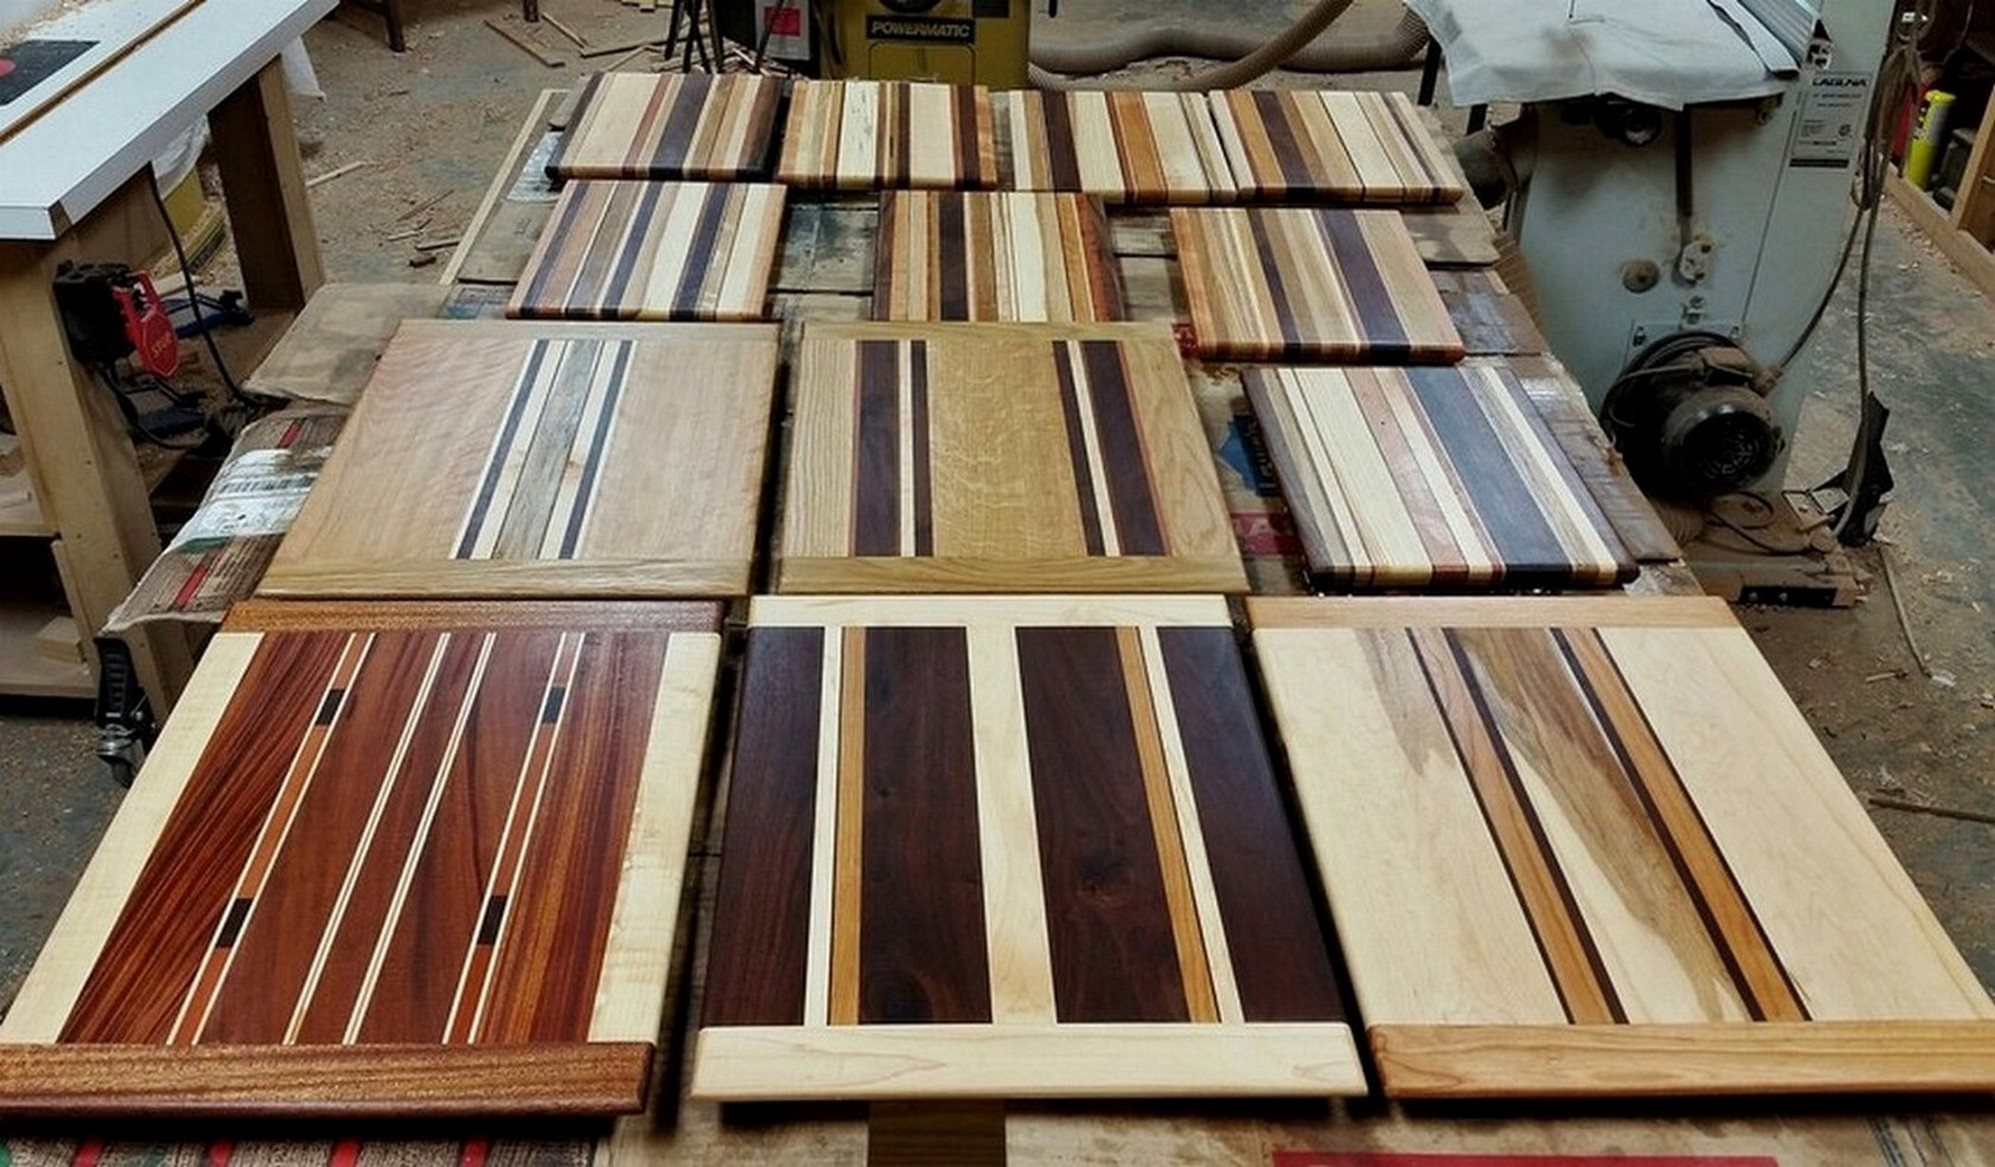 A new group of serving and cheese boards nears completion